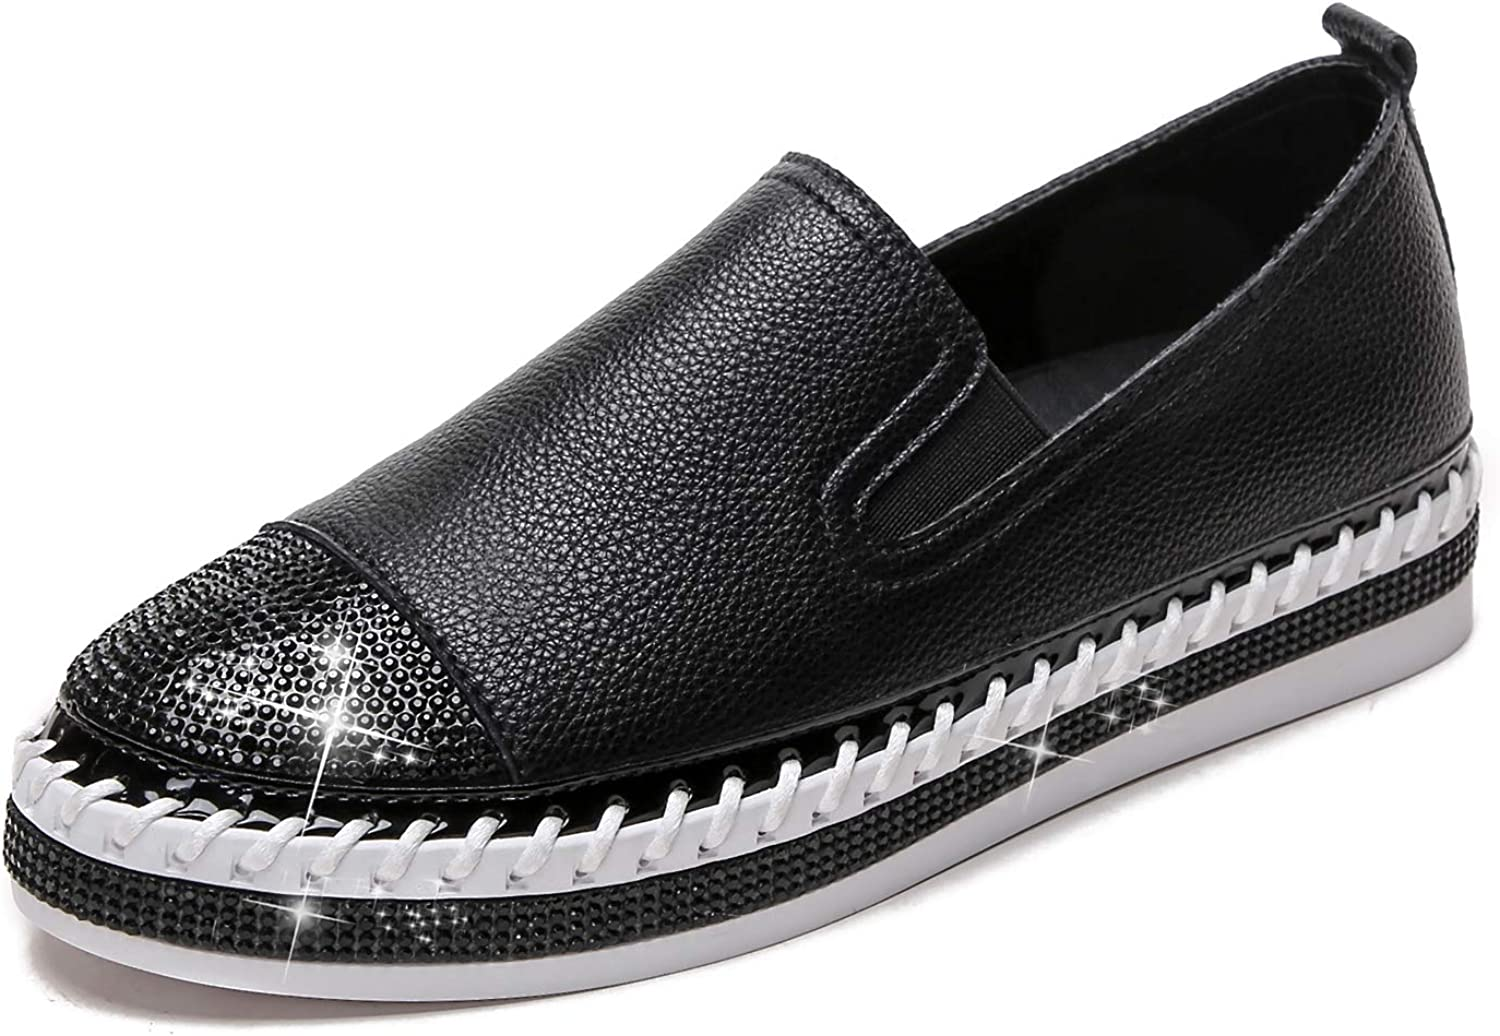 1 year warranty Tilocow Womens Shoes Platform Sneakers R Max 60% OFF On Slip Rhinestone with